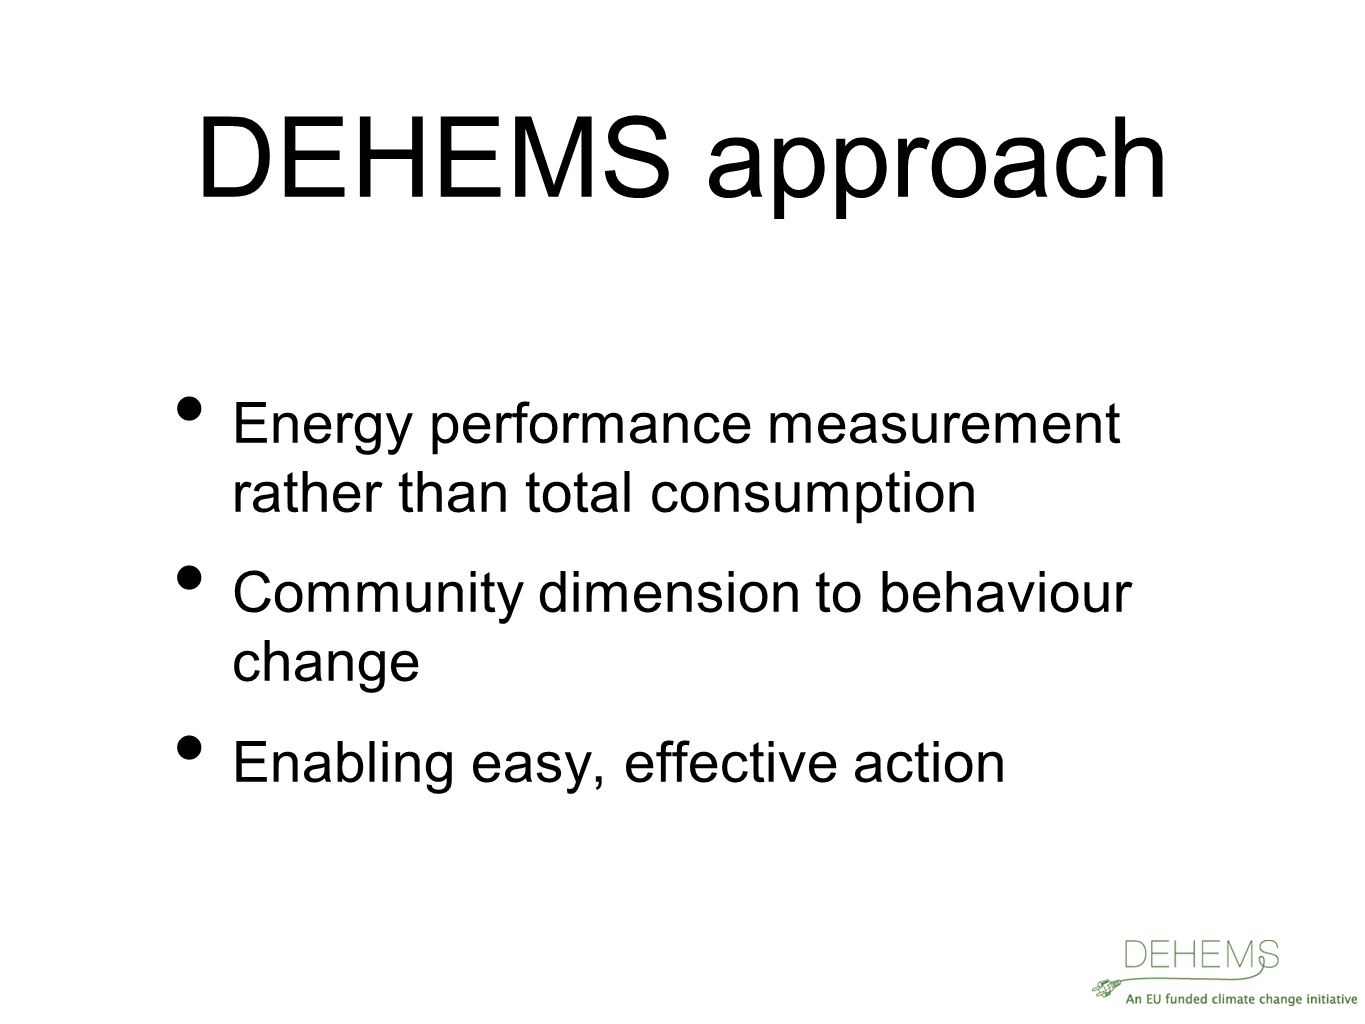 DEHEMS approach Energy performance measurement rather than total consumption Community dimension to behaviour change Enabling easy, effective action